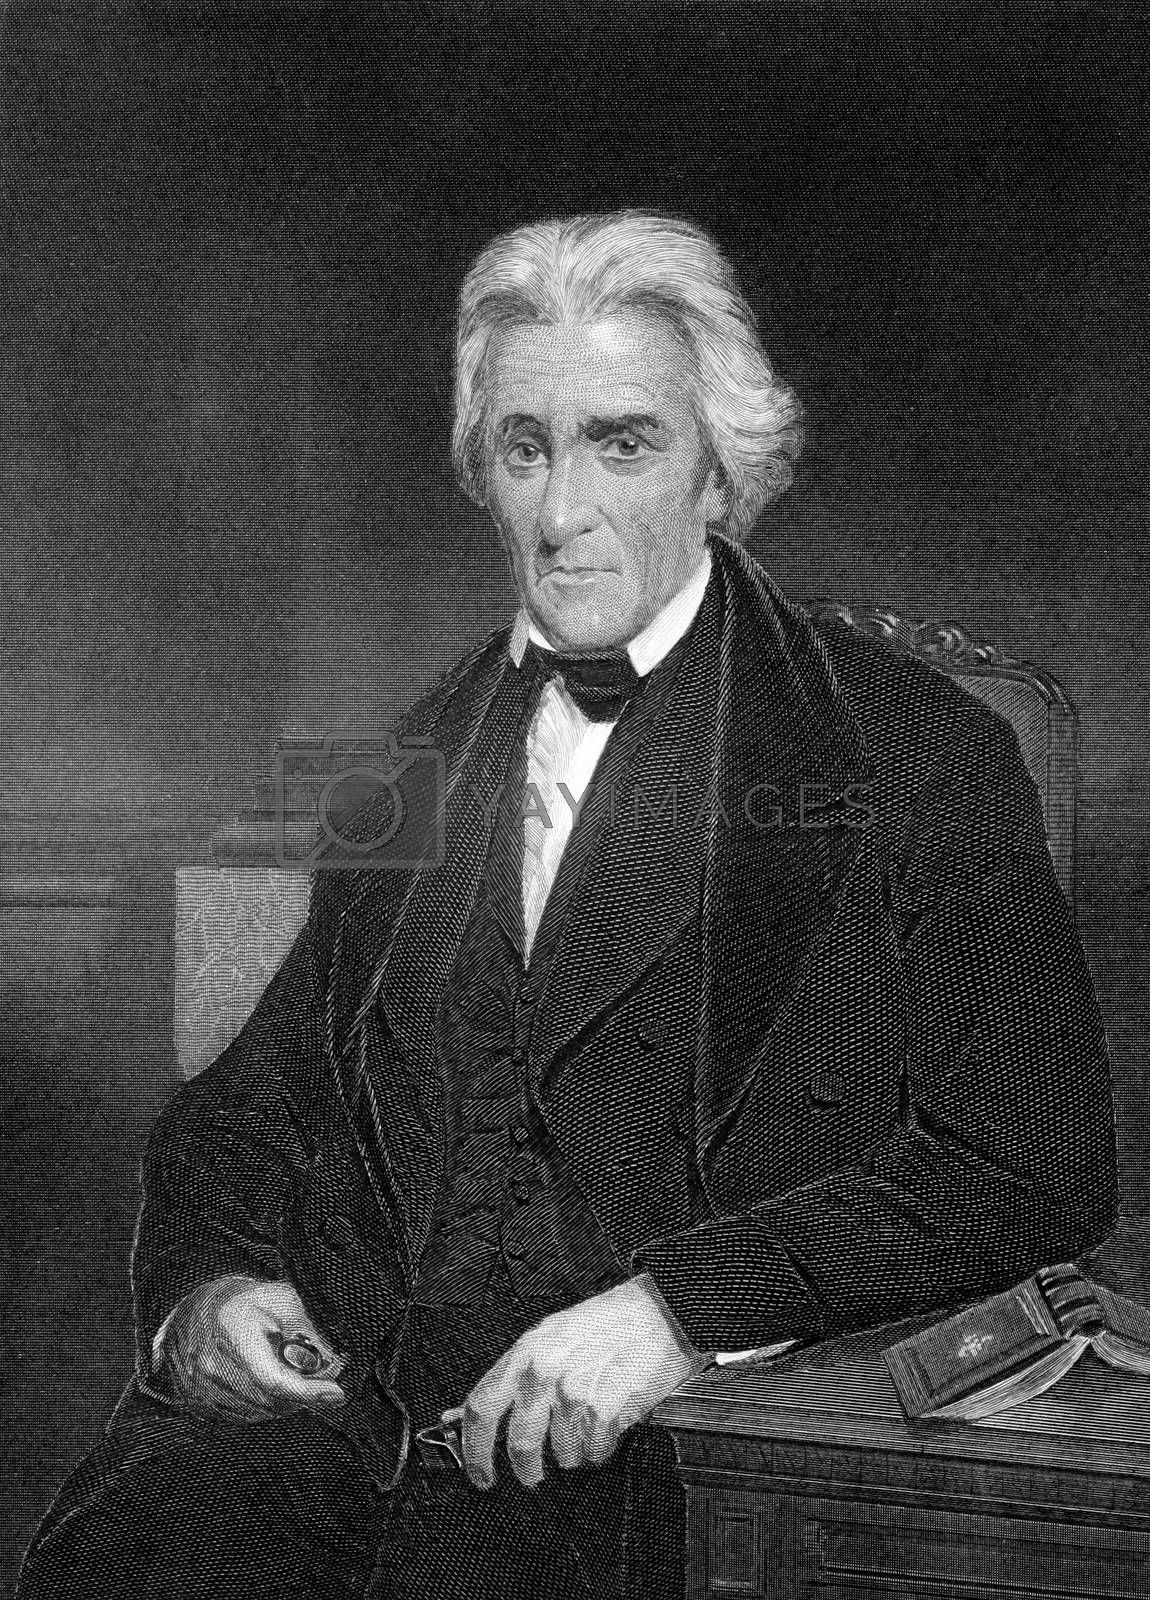 Andrew Jackson (1767-1845) on engraving from 1873. 7th President of the United States during 1829-1837. Engraved by unknown artist and published in ''Portrait Gallery of Eminent Men and Women with Biographies'',USA,1873.